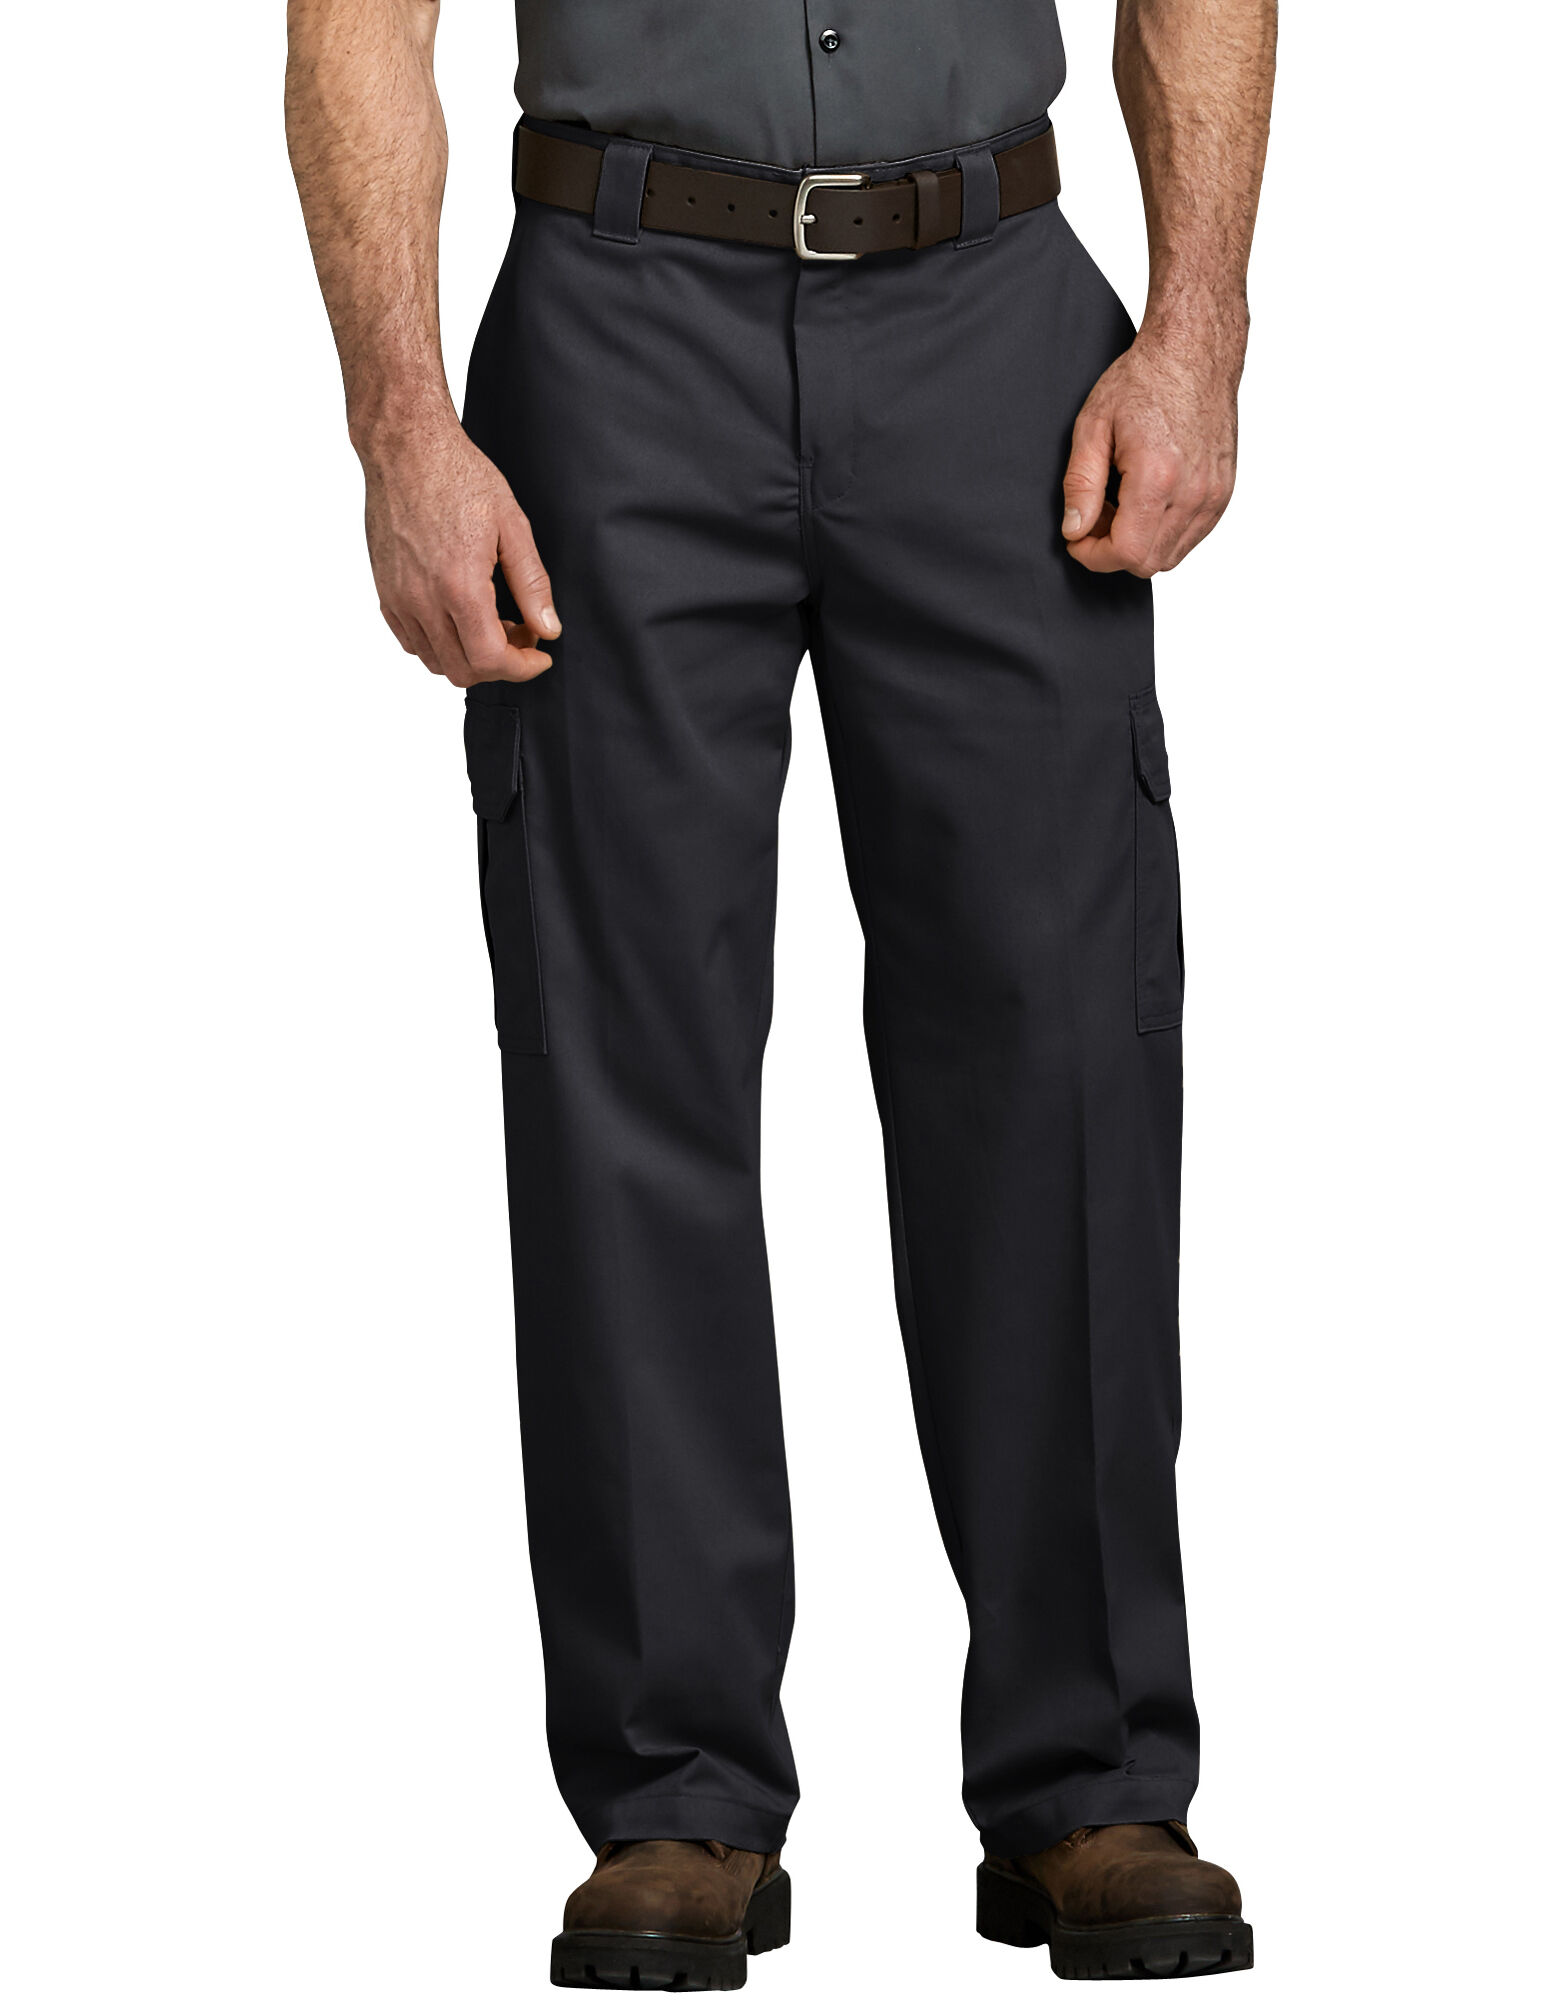 Casual Khaki Pants For Men   Relaxed Fit Cargo   Dickies